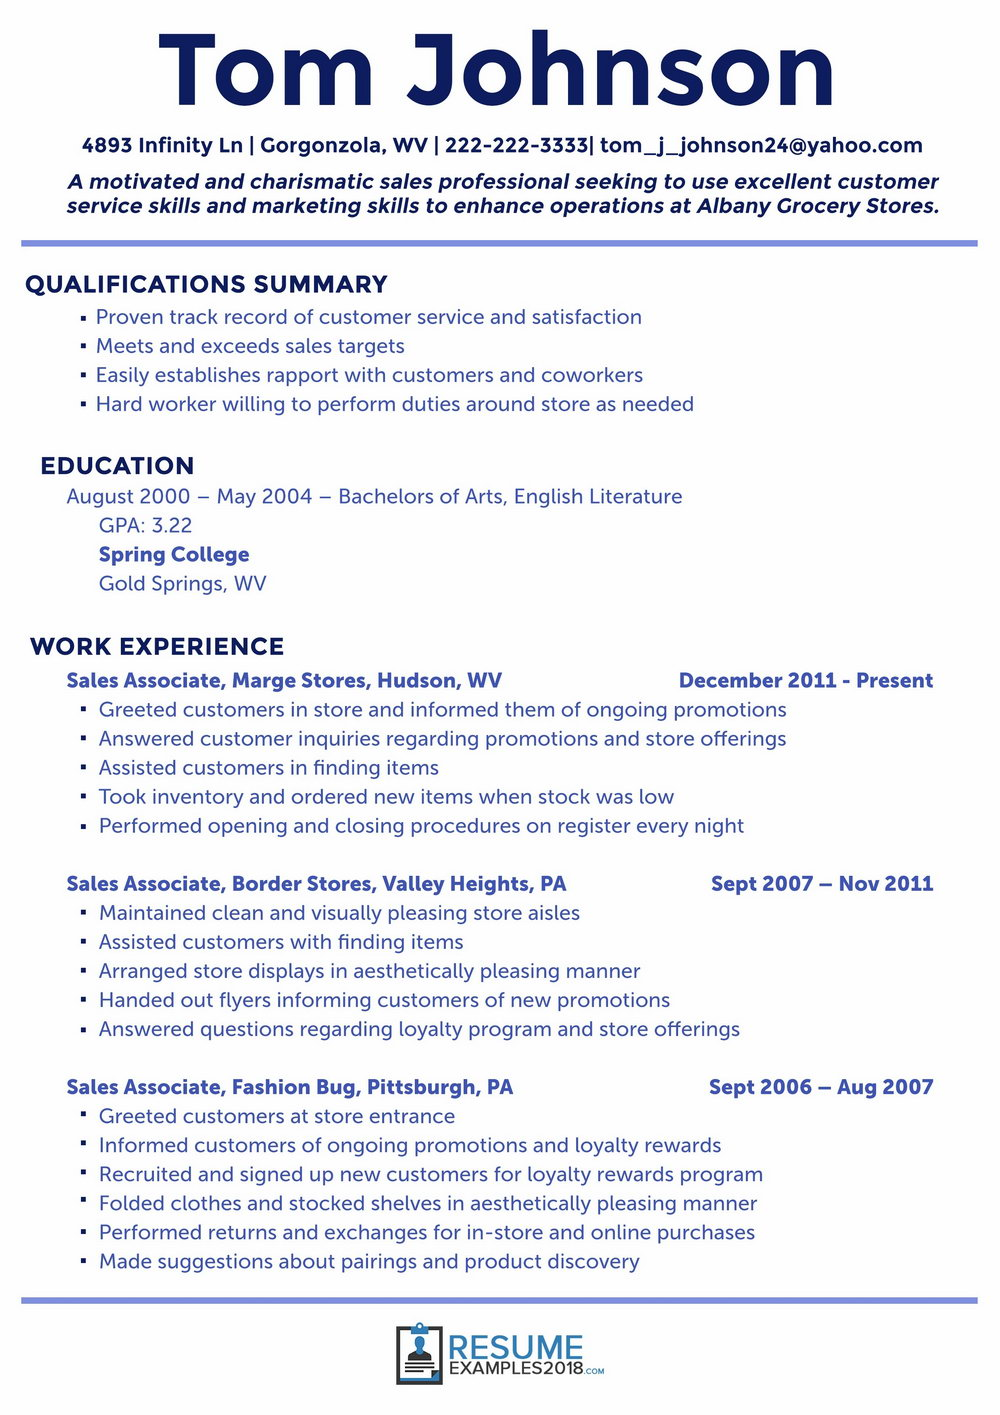 Free Resume Template Download Word 2018